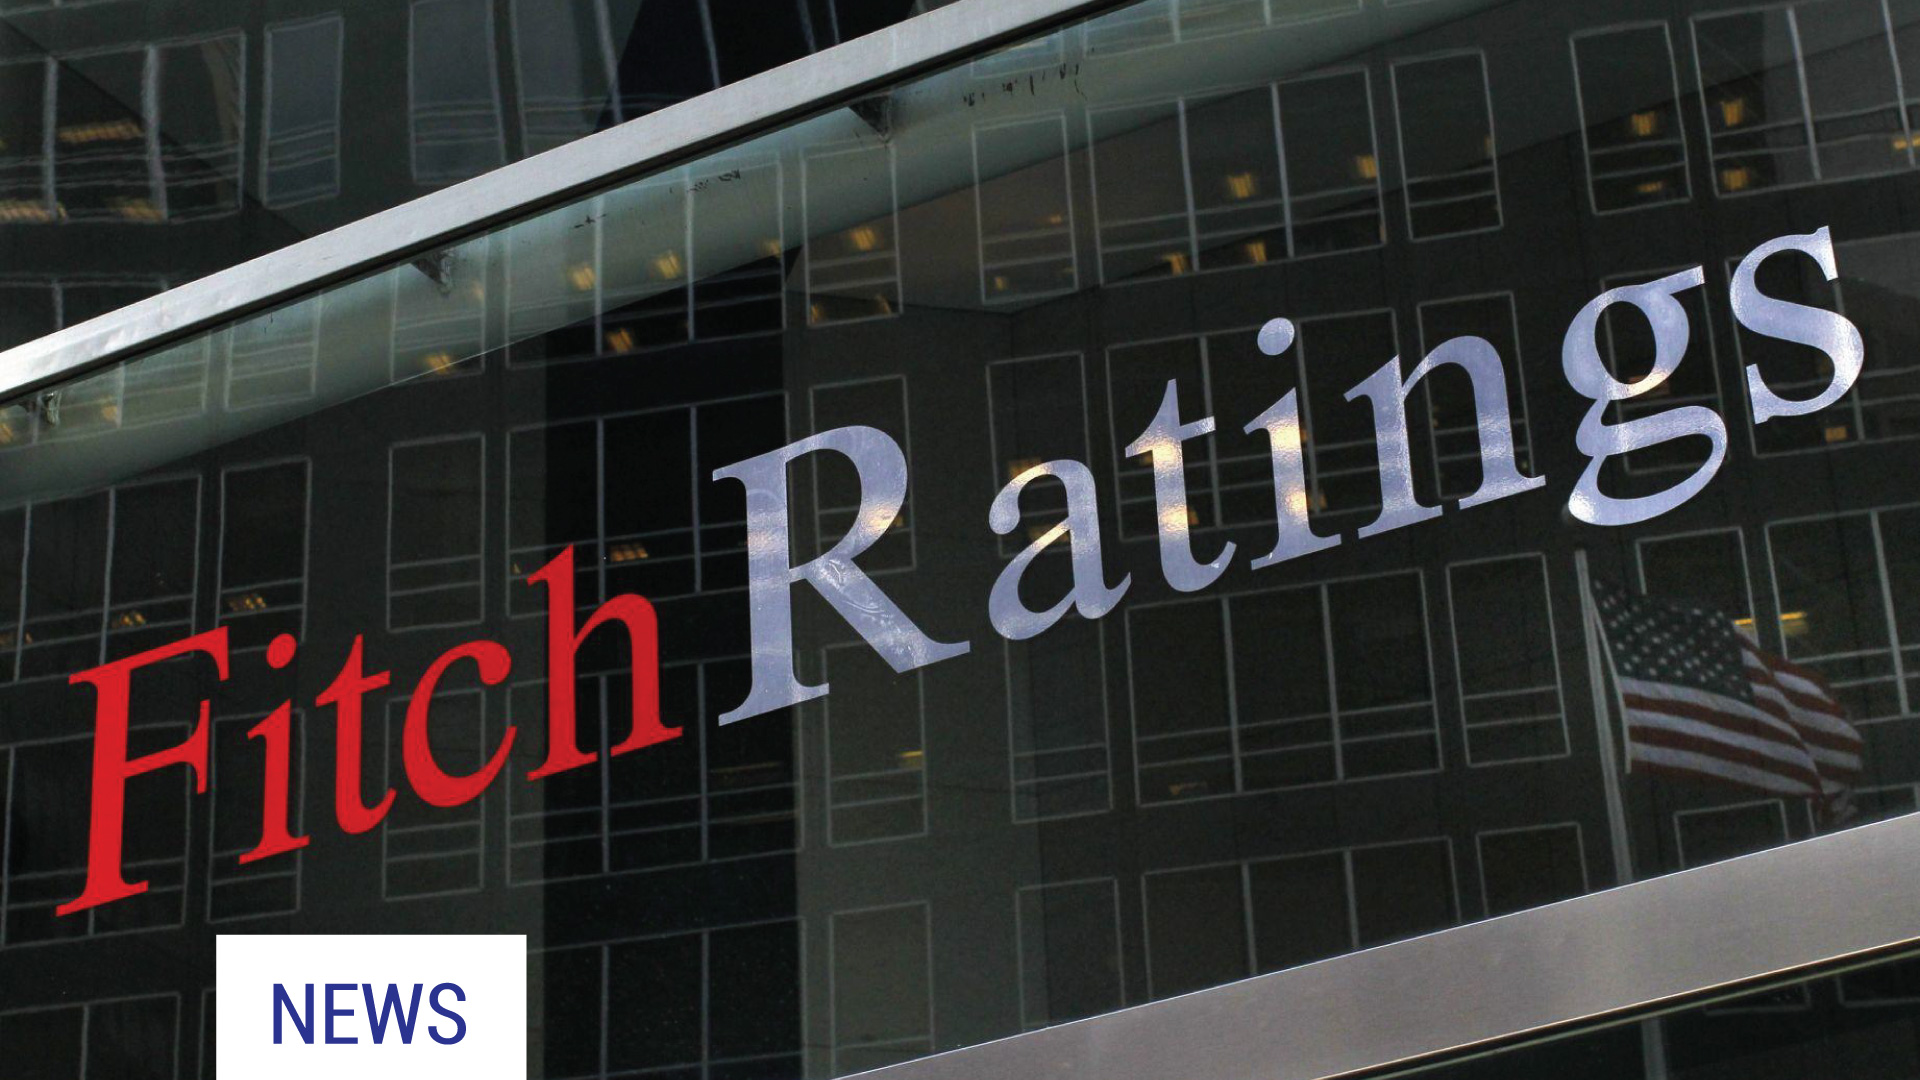 CYPRUS MAIL: FITCH UPGRADES CYPRUS TO INVESTMENT GRADE